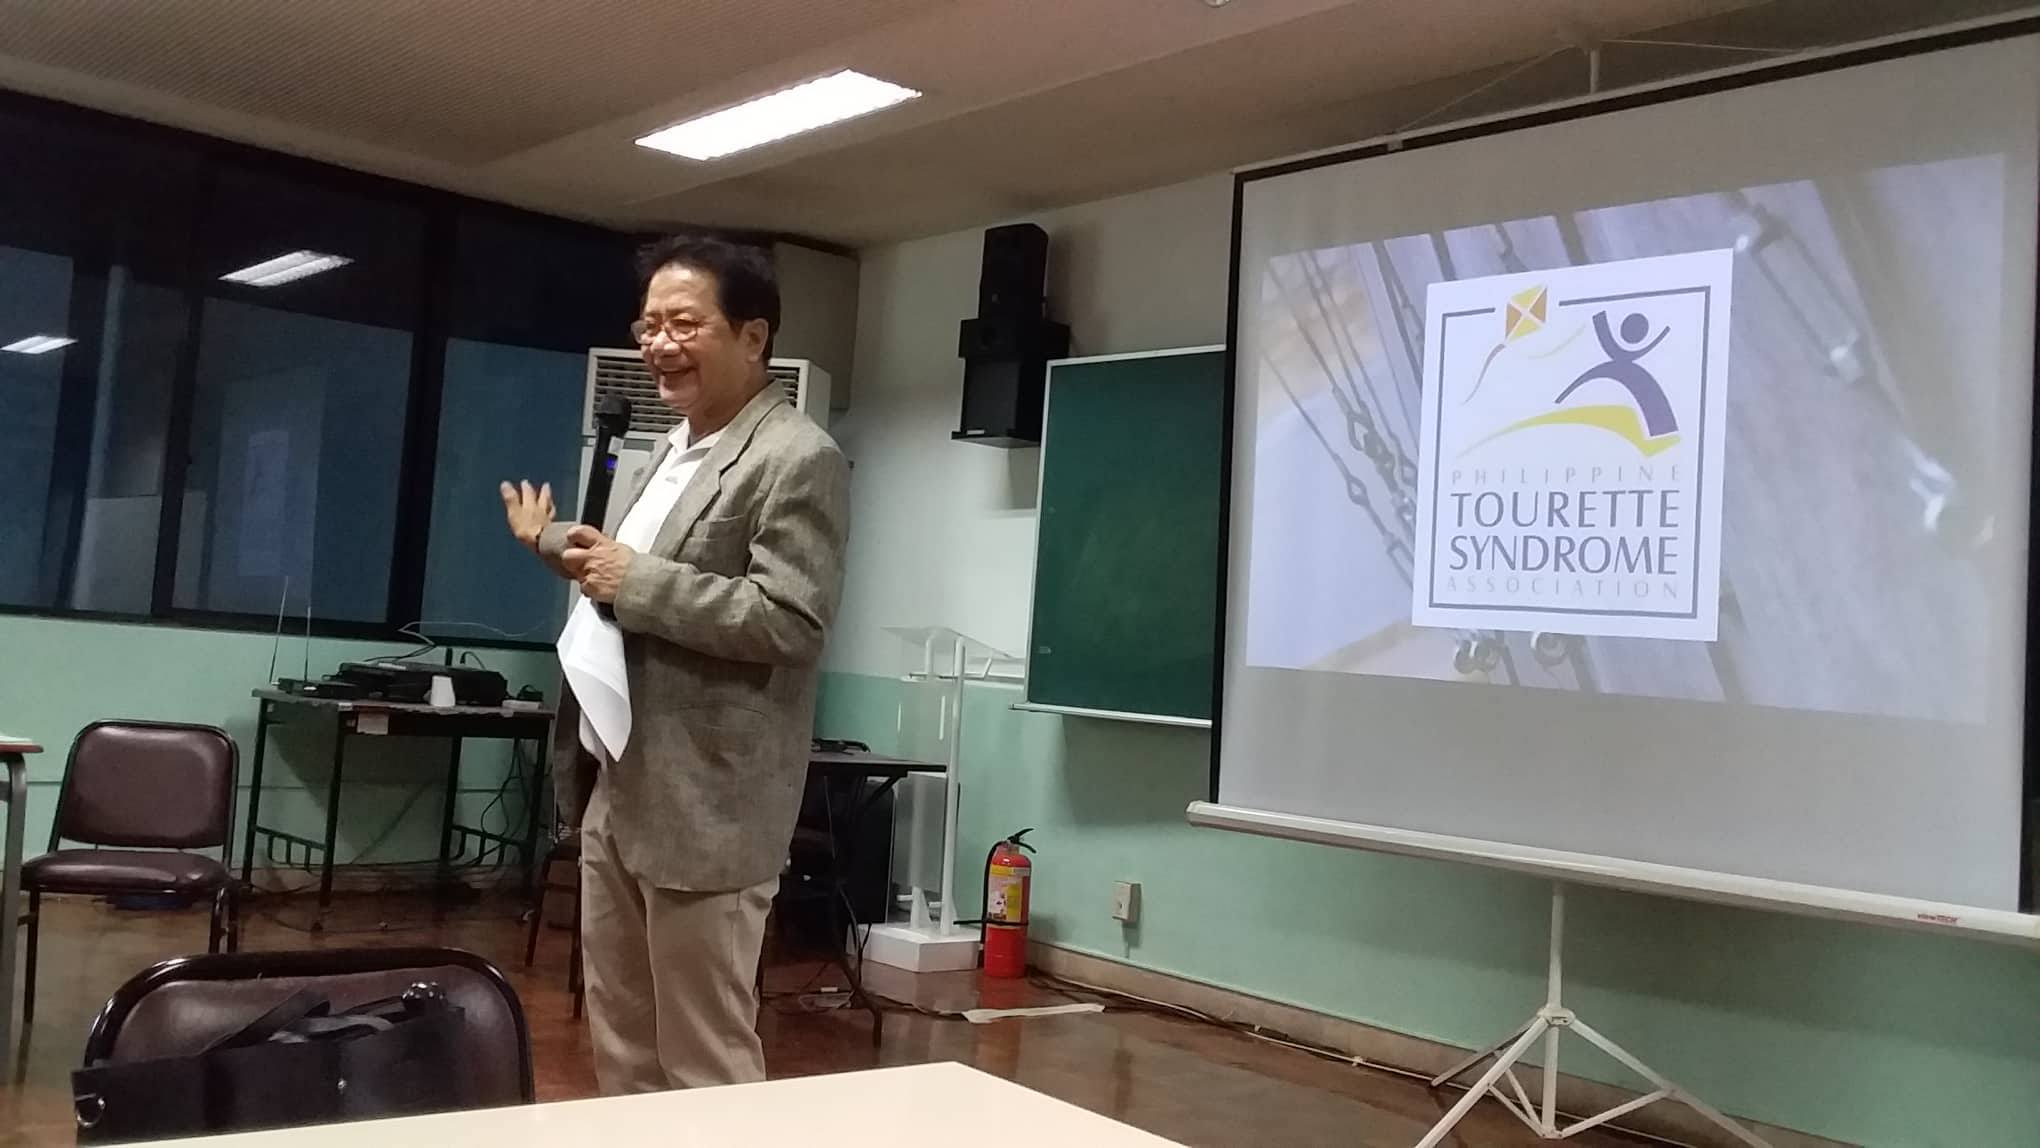 INSPIRE. PTTC-GMEA Executive Director Nestor Palabyab gives an inspirational message during the annual gathering of the Philippine Tourette Syndrome Association on March 20, 2019. Photo by Marlon Fuentes